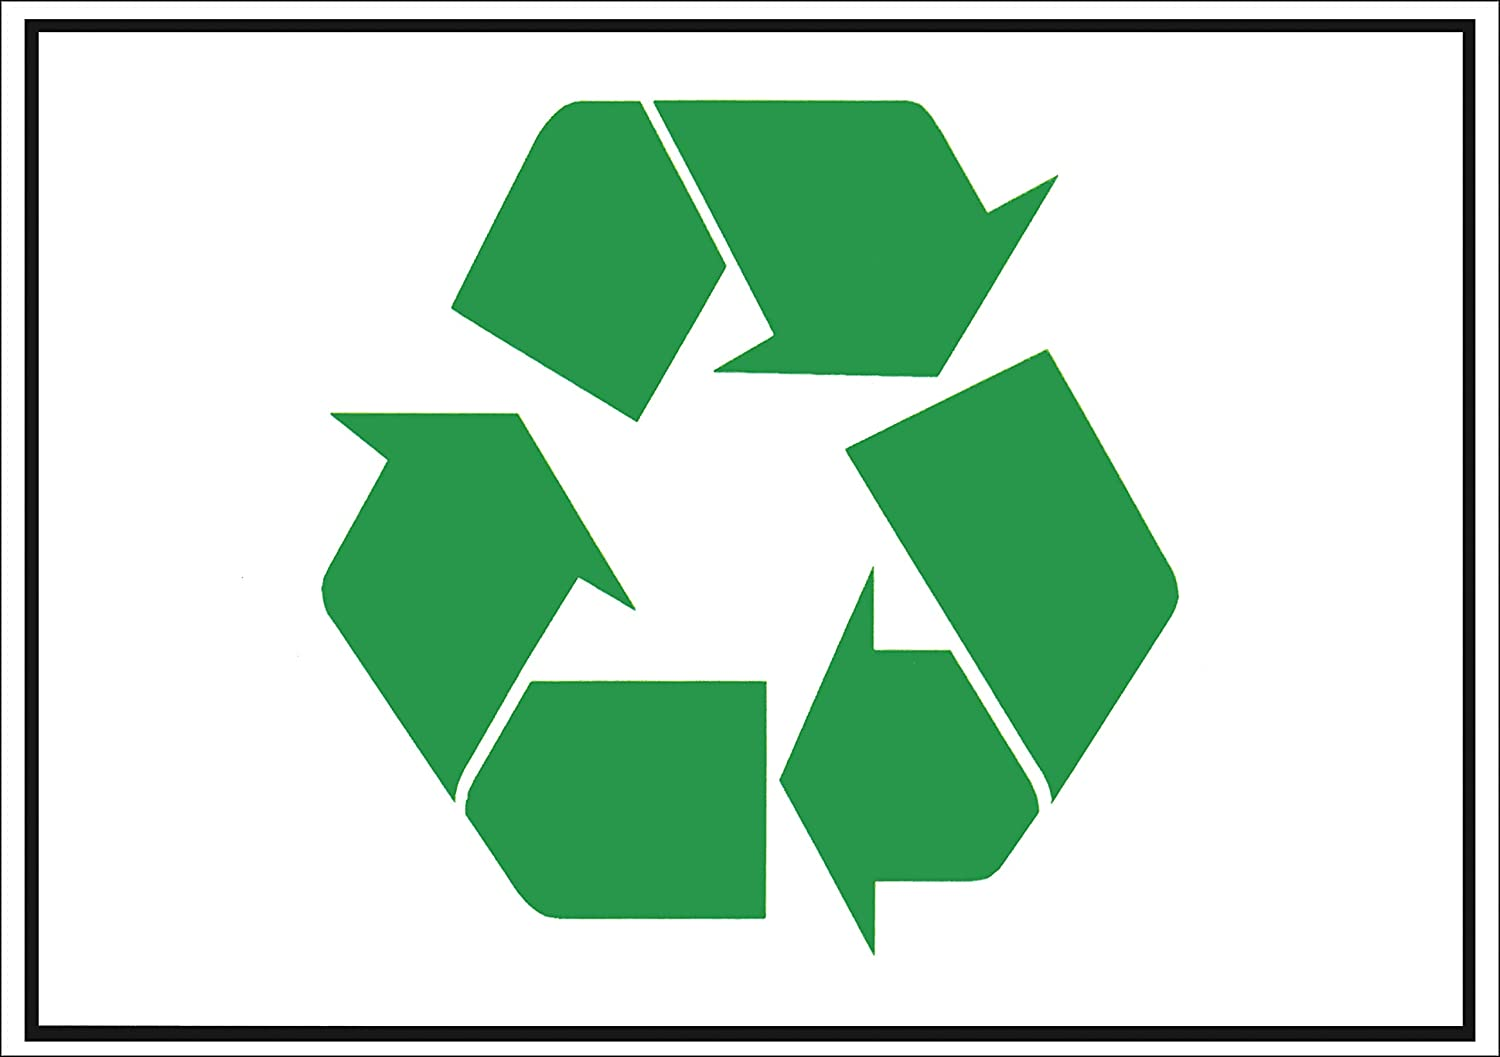 CarryaBigSticker Green Recycle Magnetic Sign Flexible 7.5 x 10.75 in Encourage Recycling Weather Resistant.